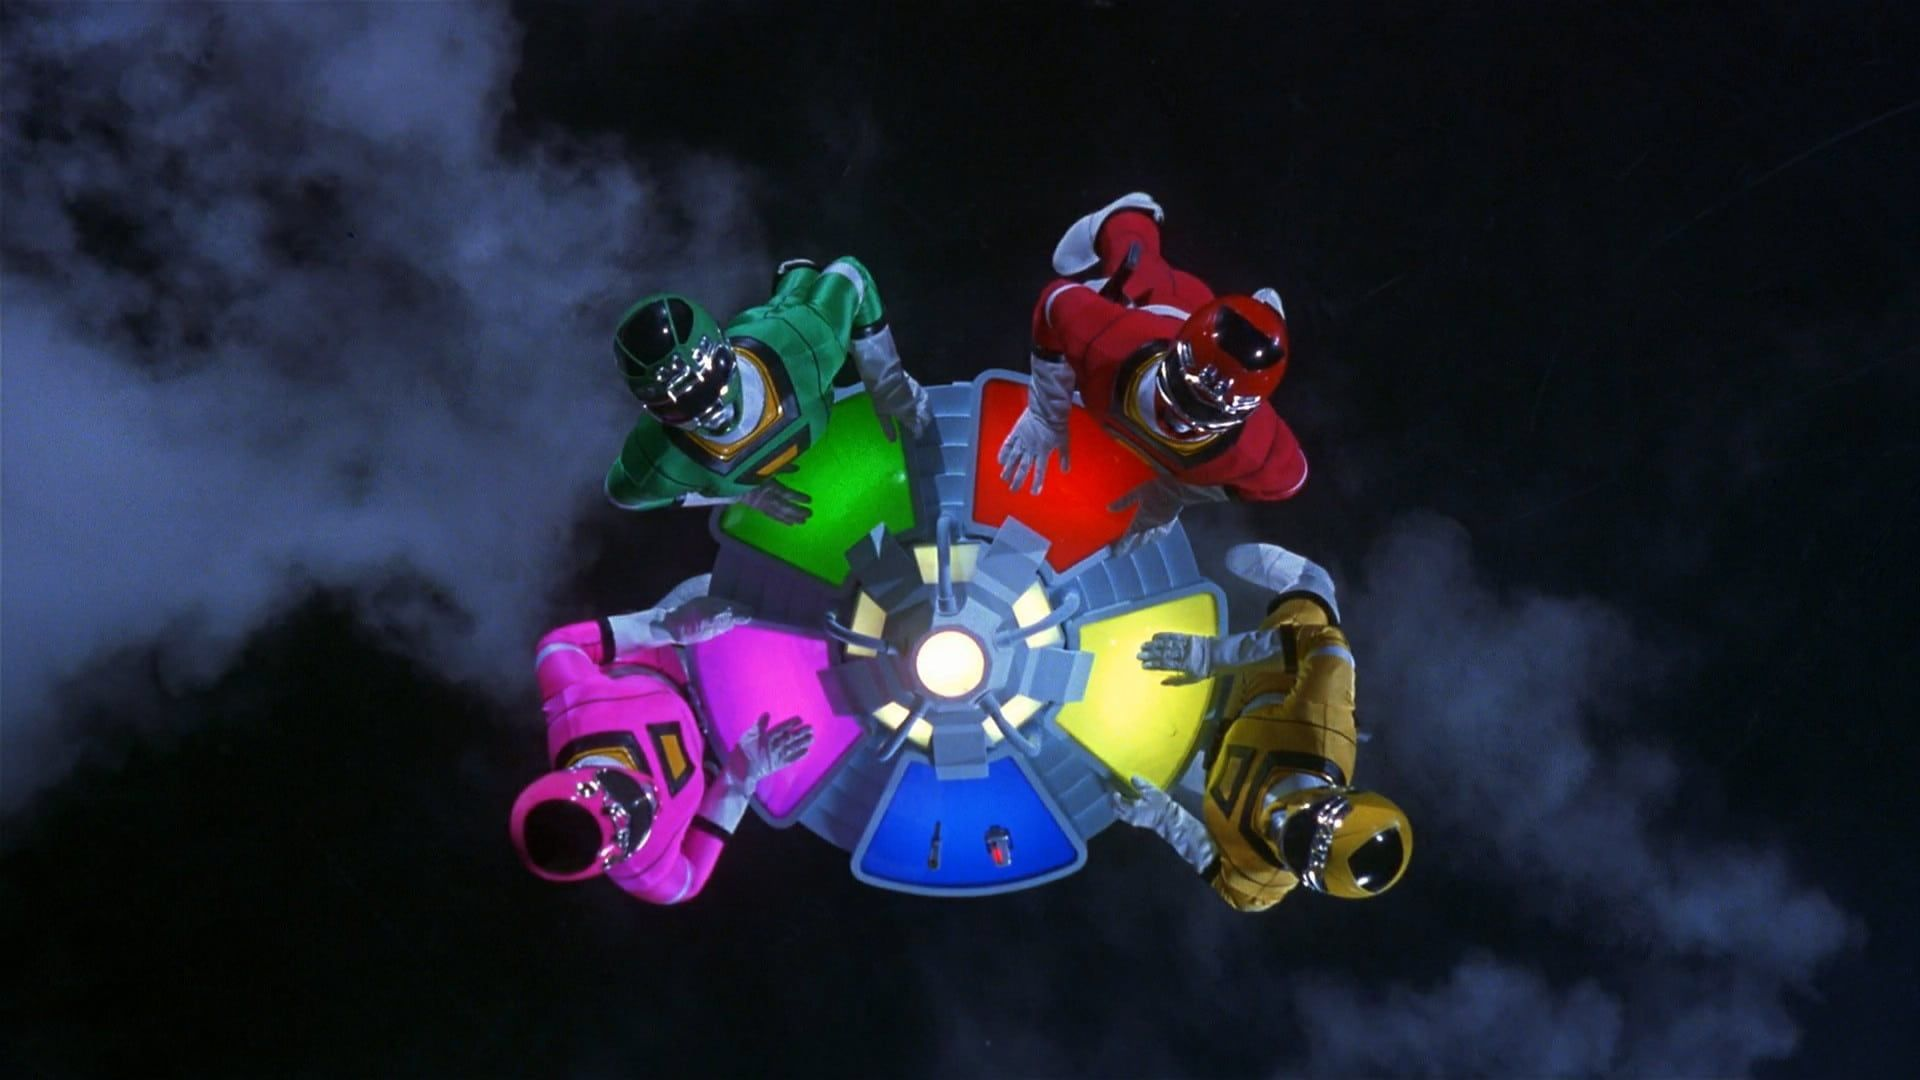 Pre Order Turbo A Power Rangers Movie On Blu Ray Now Power